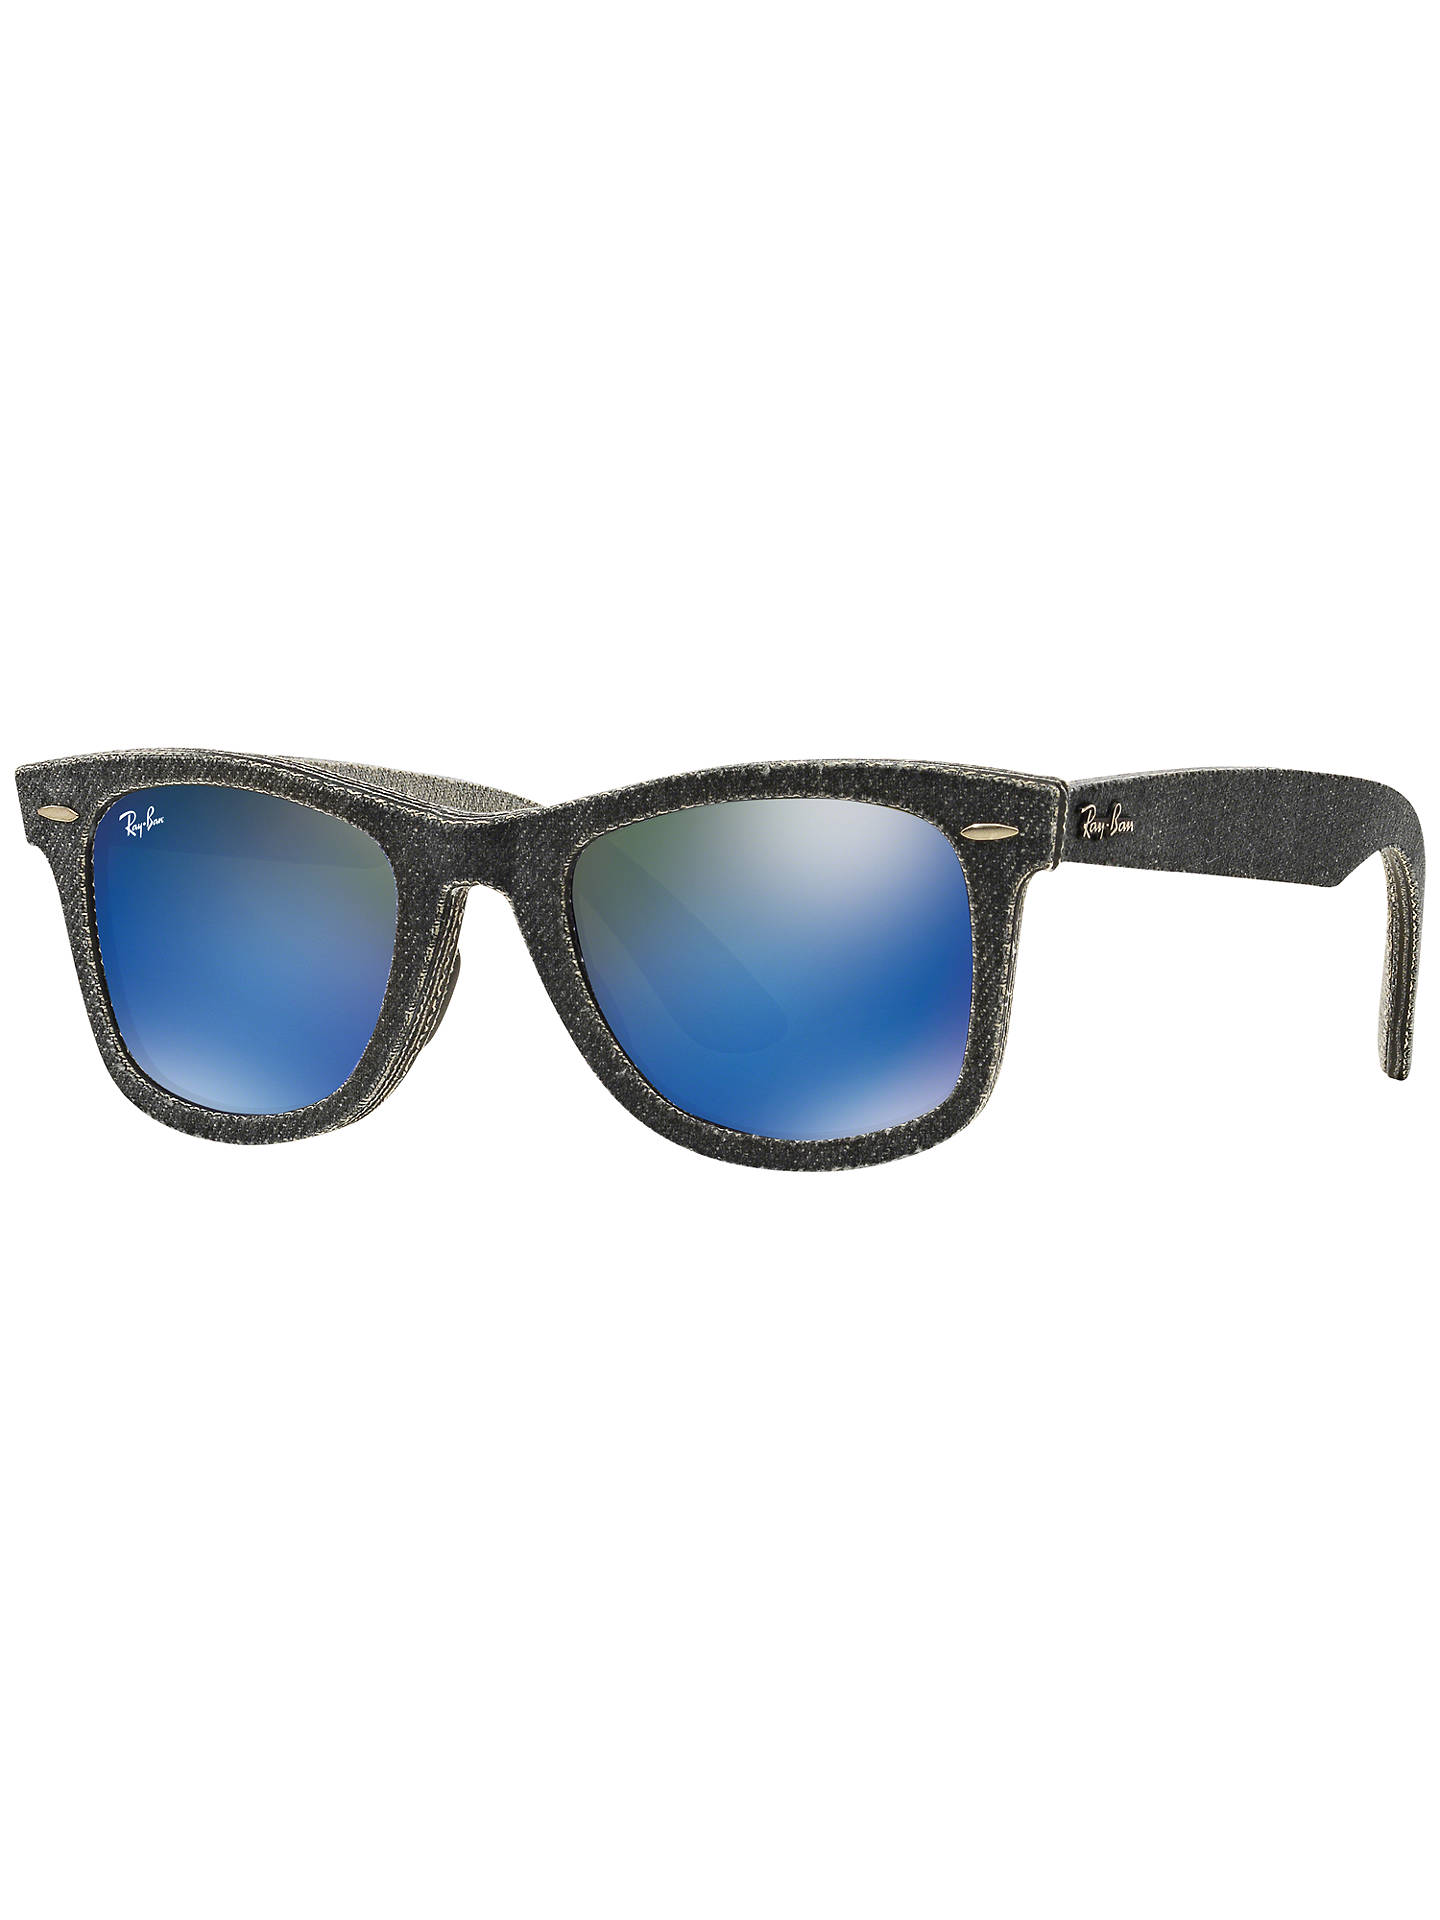 0d0373baf3 Ray-Ban RB2140 Original Wayfarer Denim Sunglasses at John Lewis ...